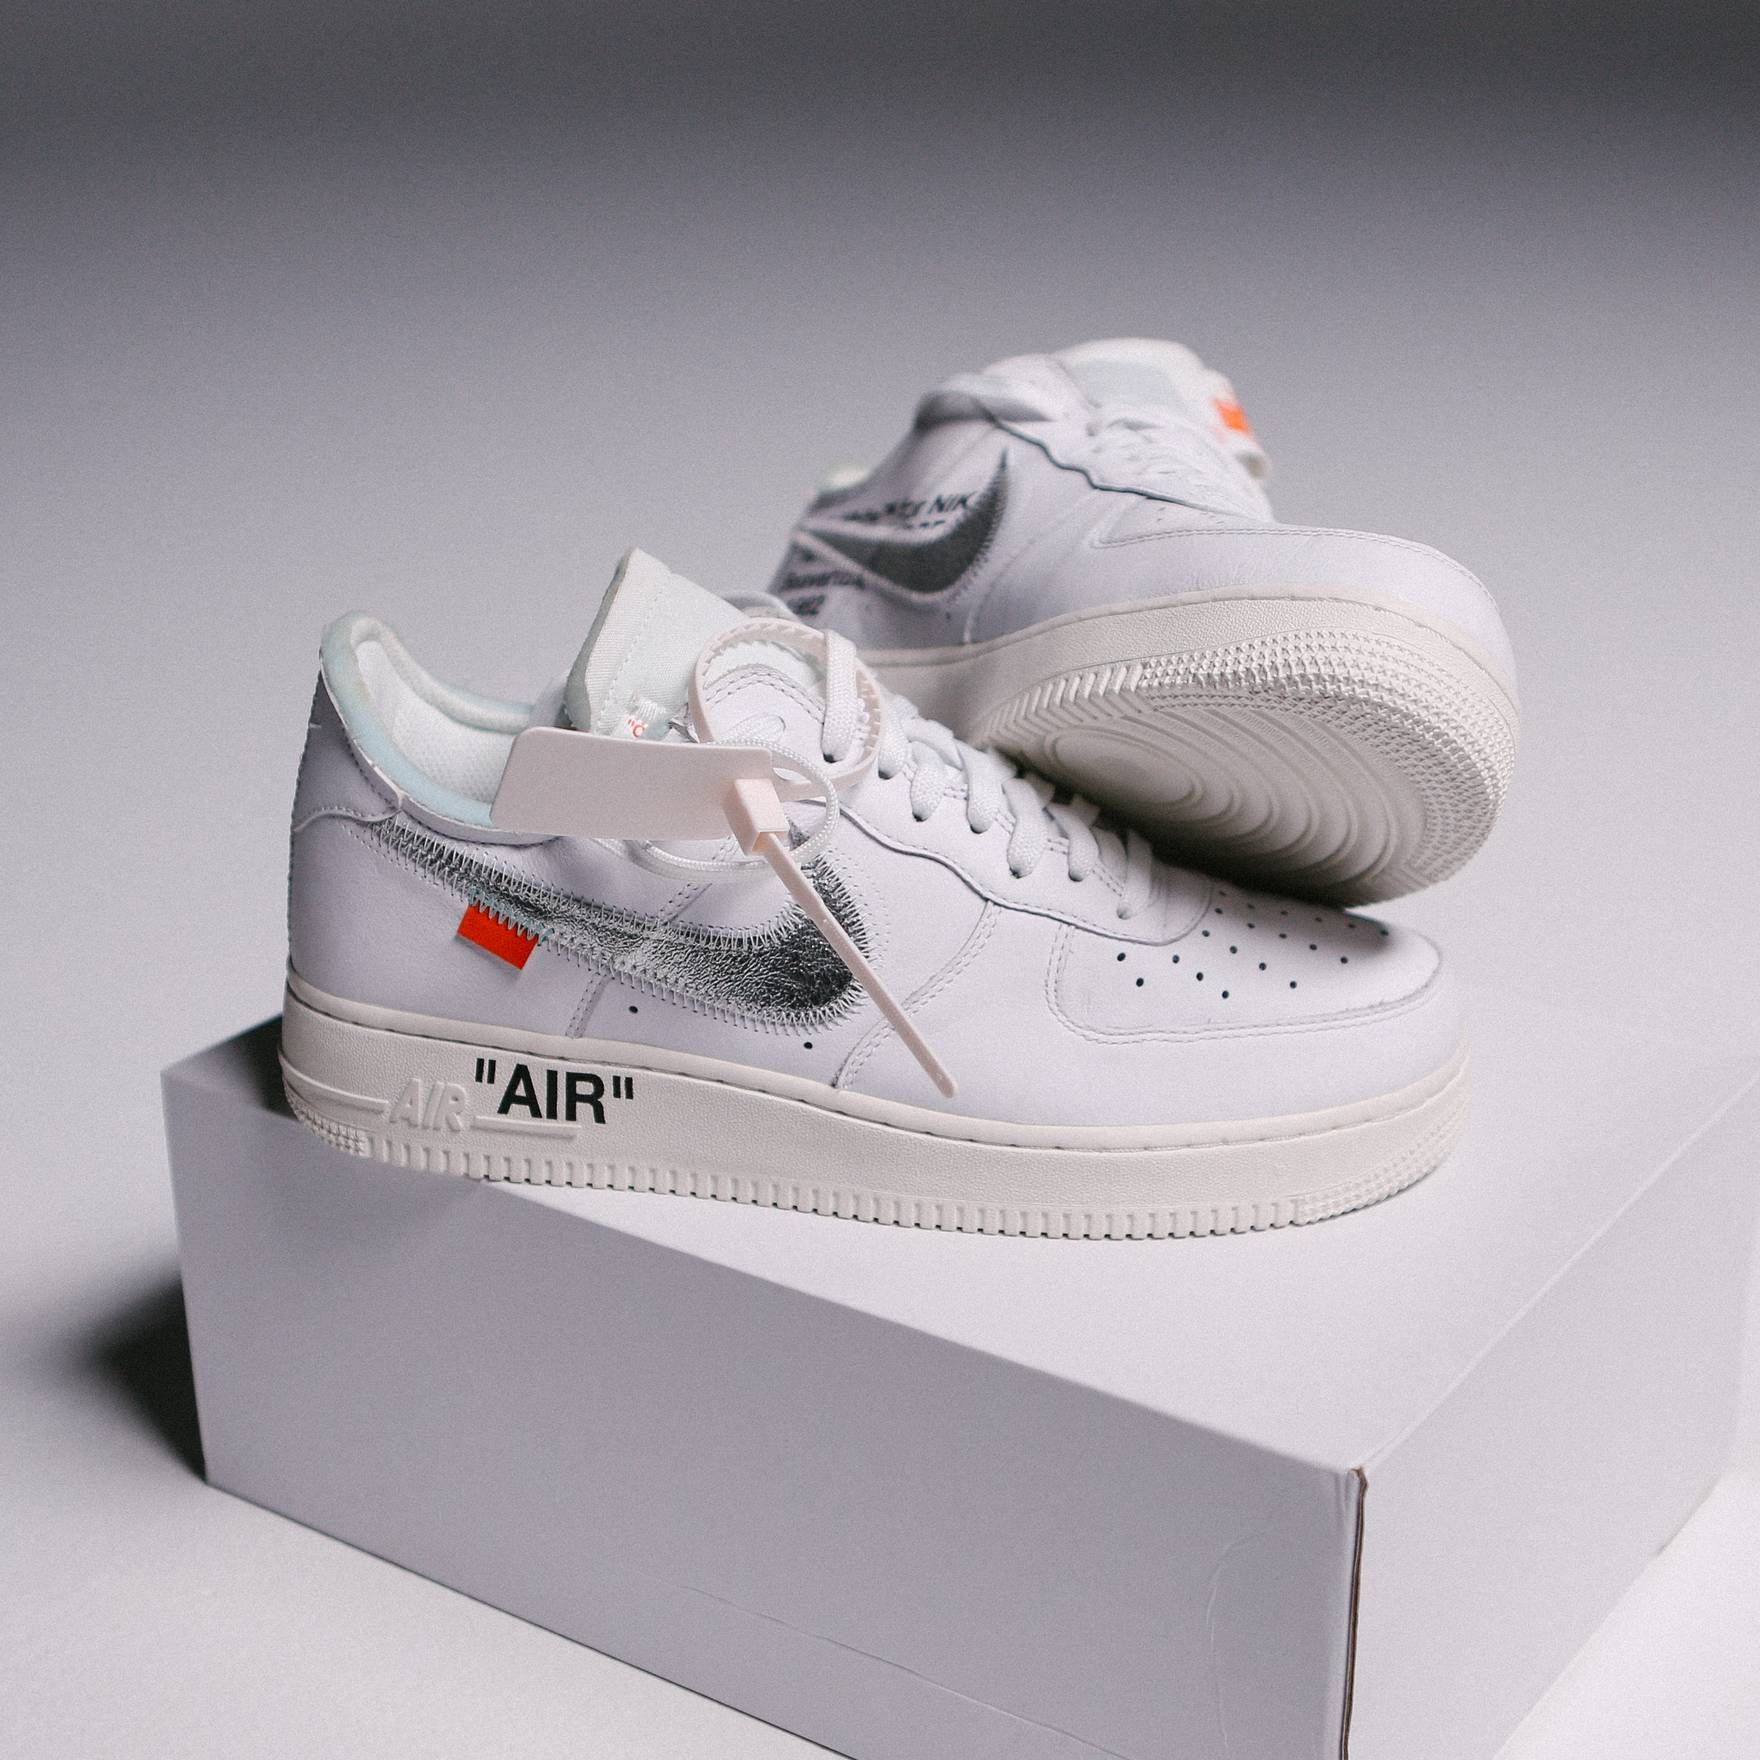 Nike Off-White Nike Air Force One Collab ComplexCon Size US ...